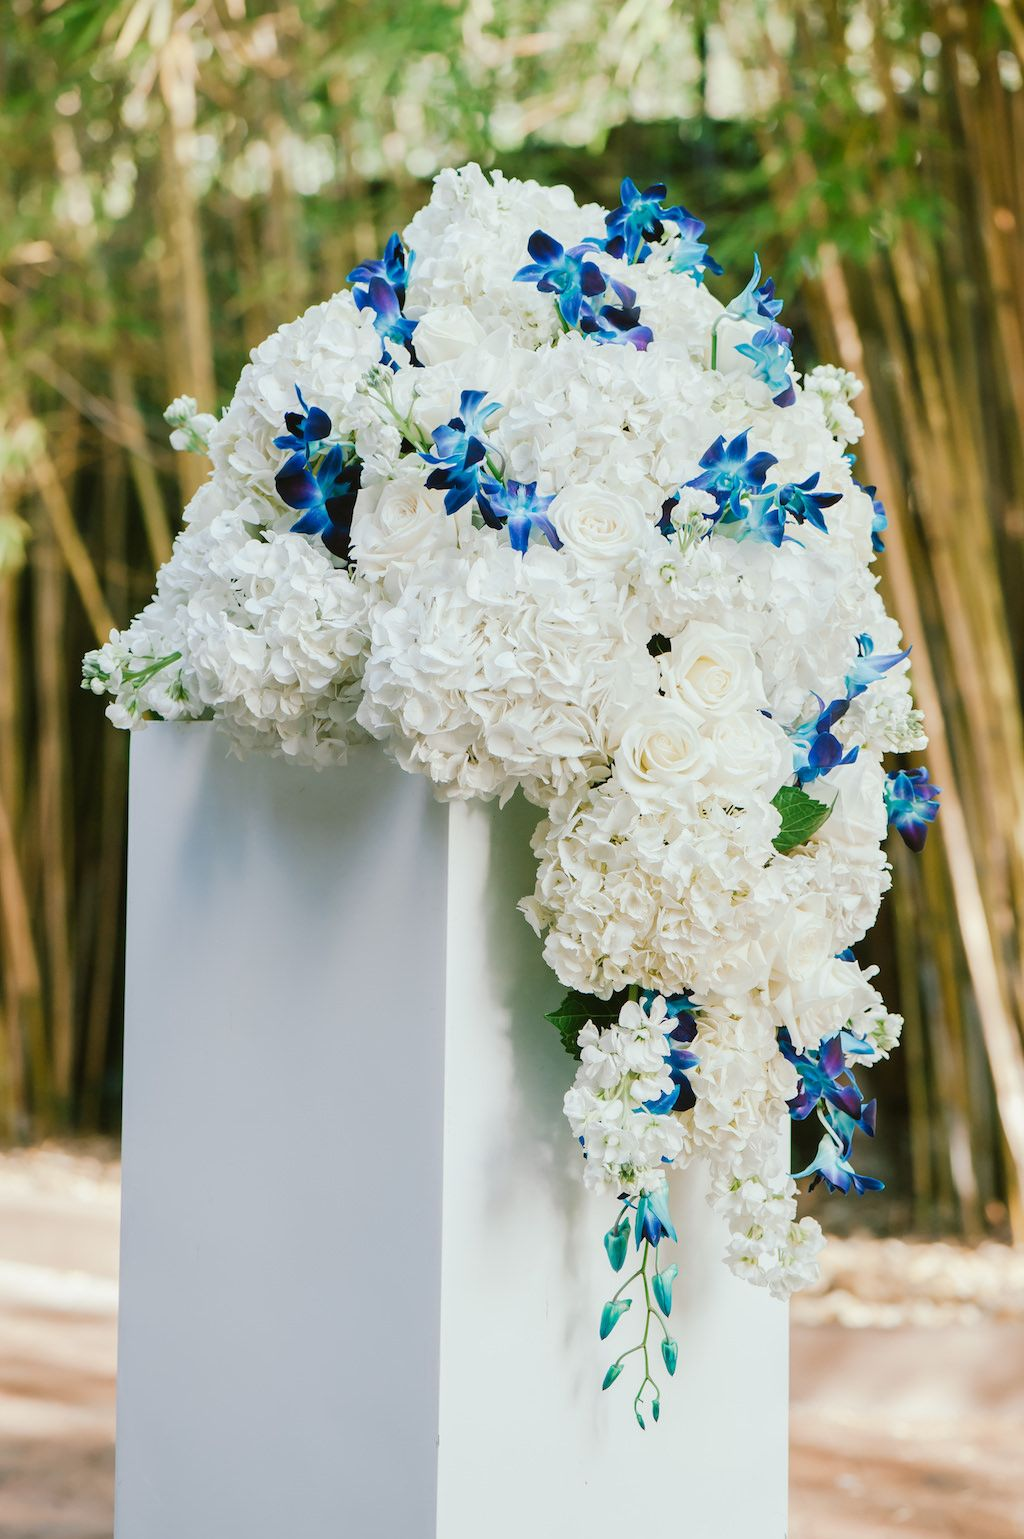 Blue and white hydrangea and orchid ceremony florals